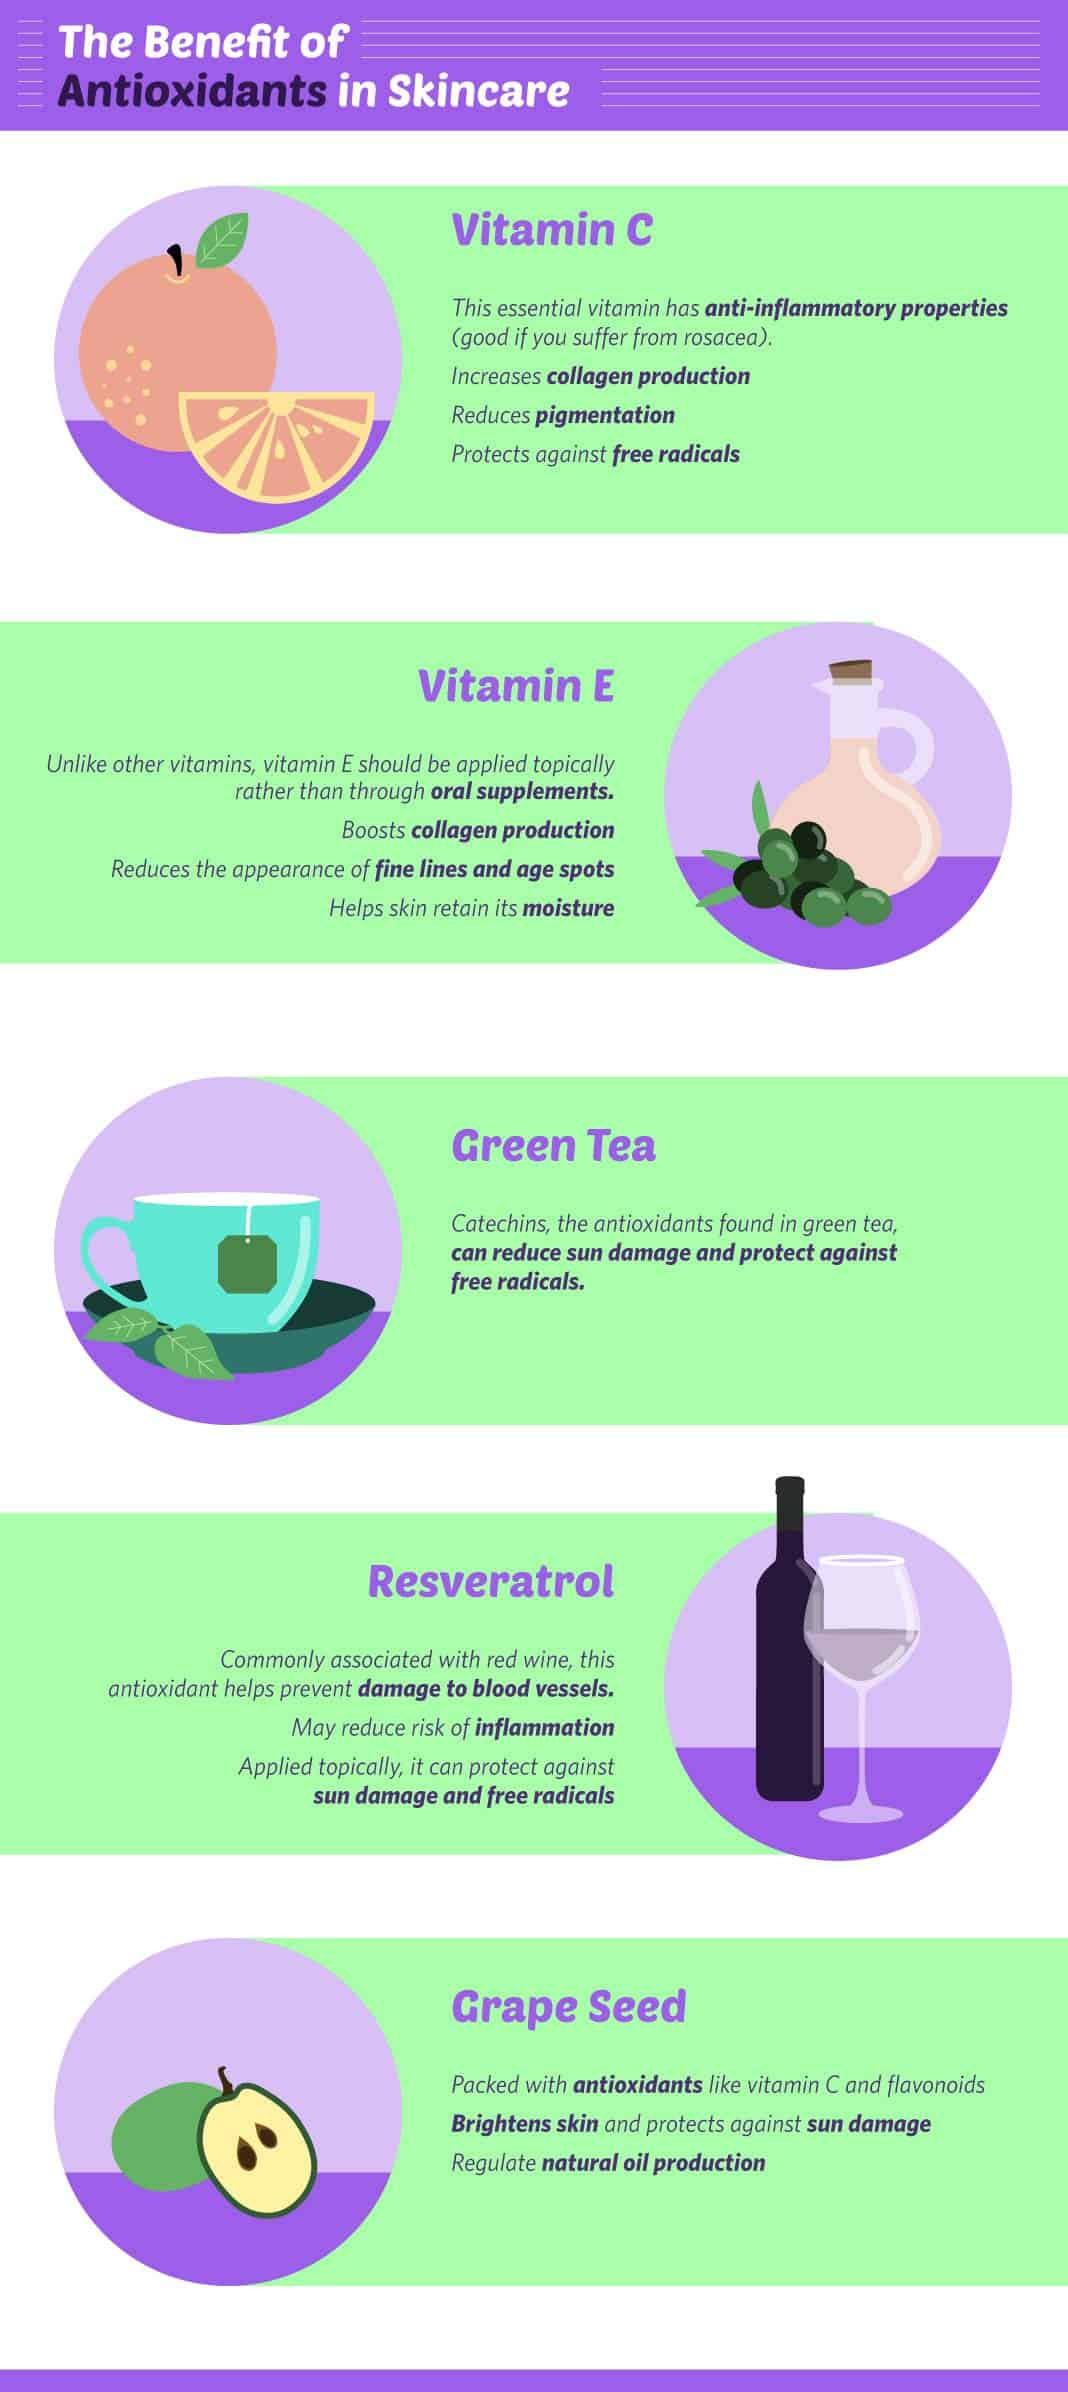 The Benefit of Antioxidants in Skincare